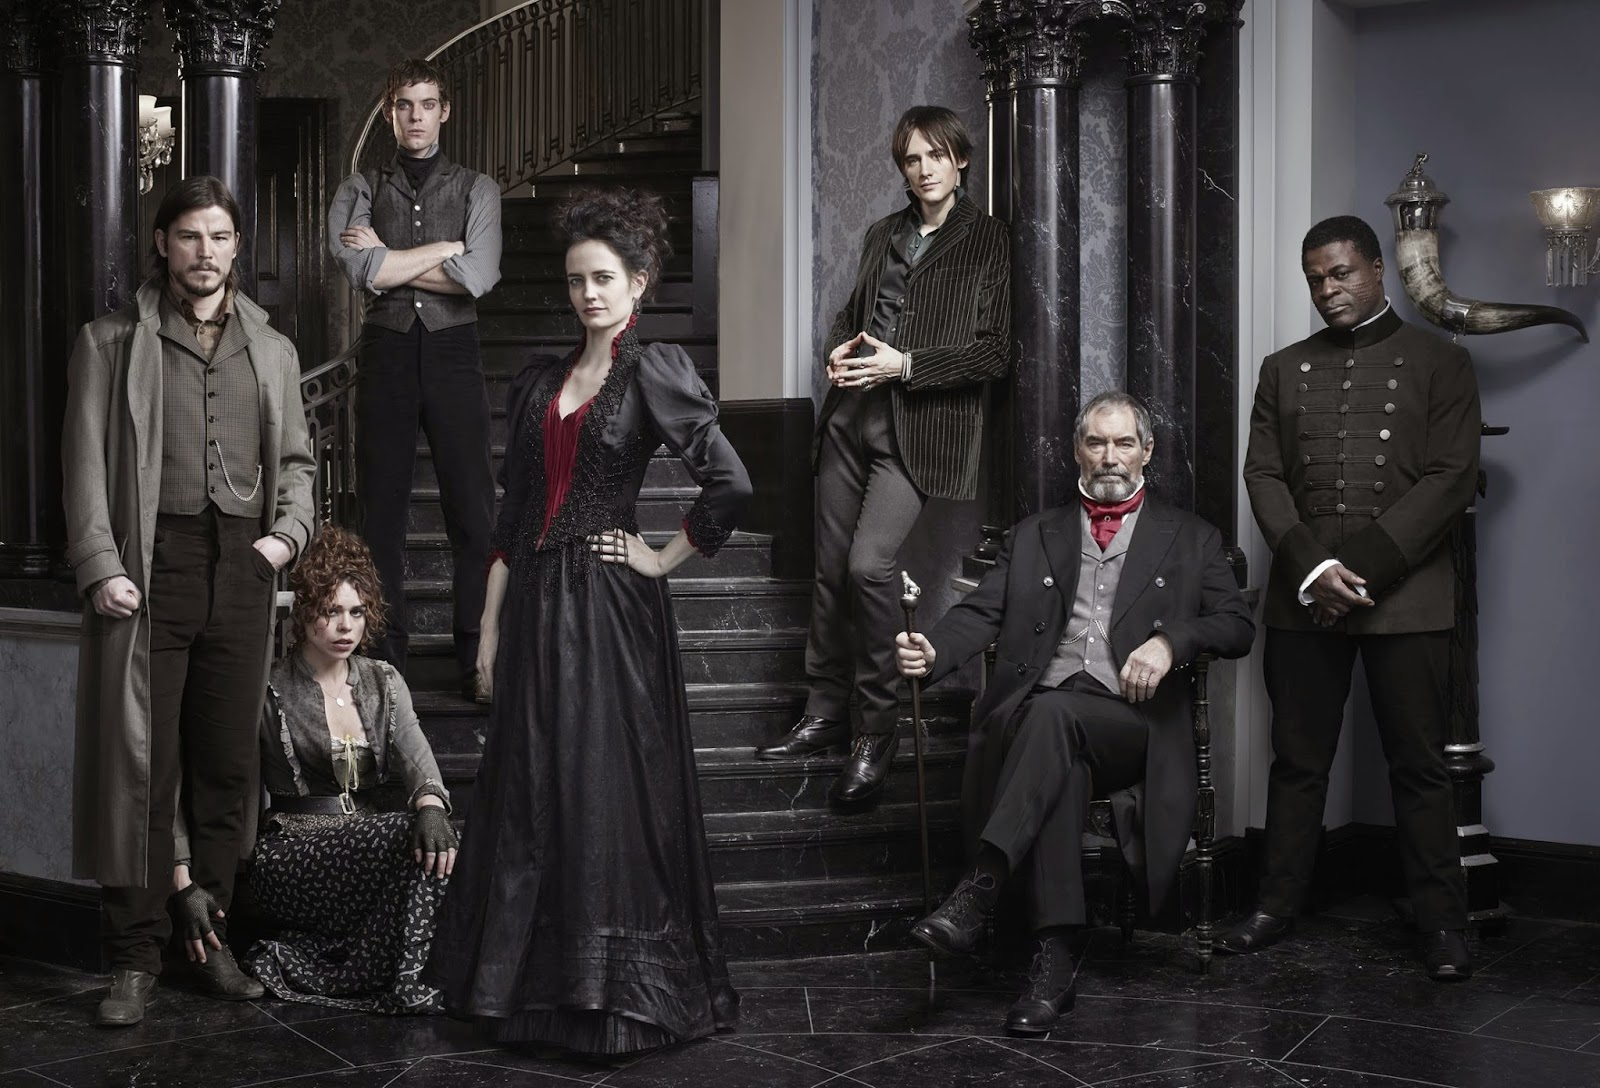 Penny Dreadful Favorite Quotes From Season 1 - GMonsterTV